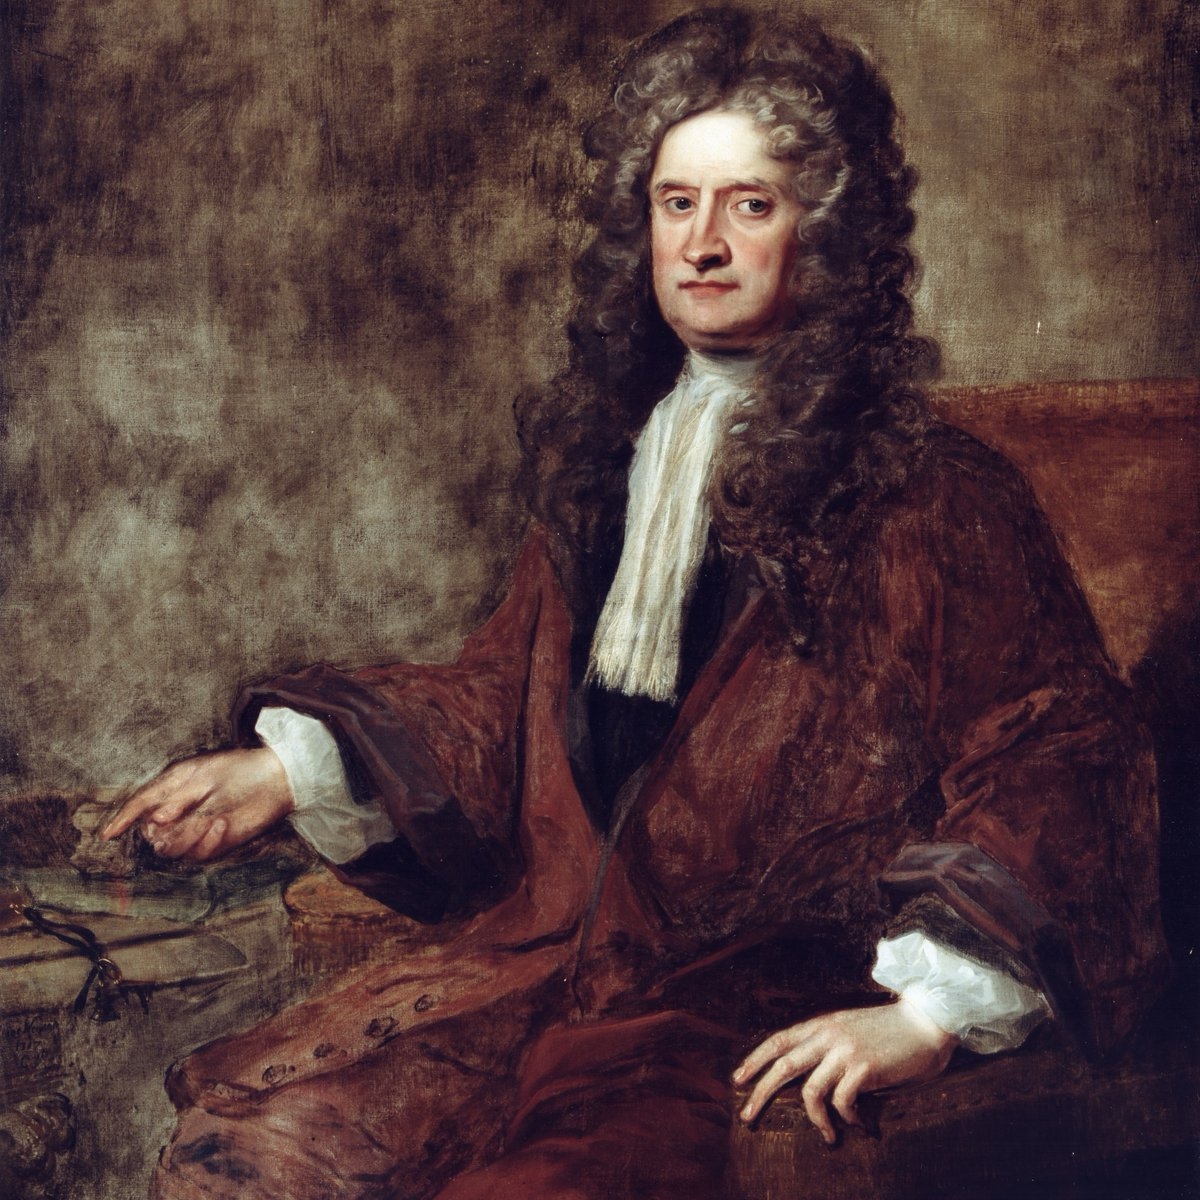 Today, the Royal Society pays tribute to a man born #OnThisDay who changed the world. Happy birthday, Isaac Newton FRS, born today in 1642.